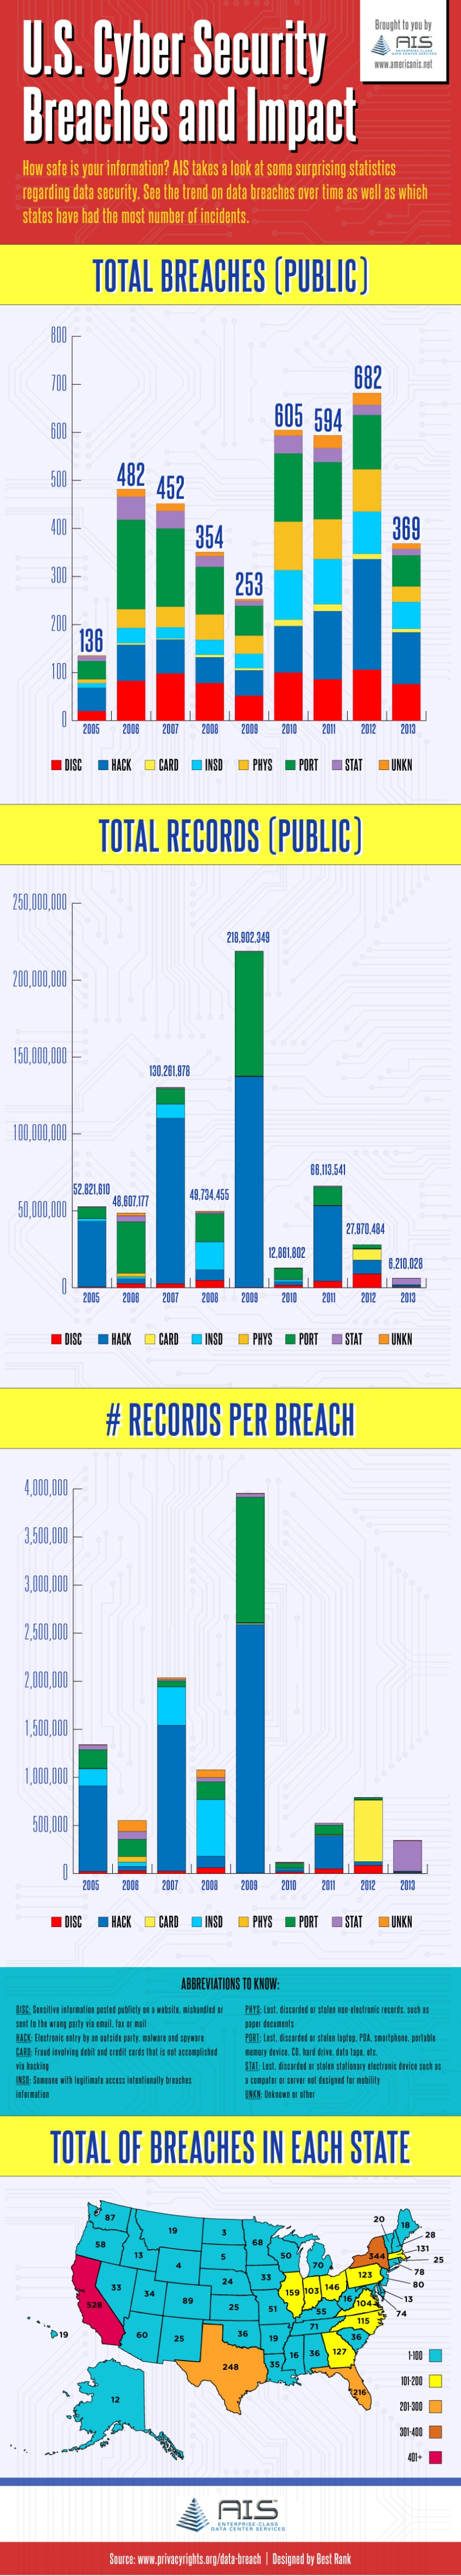 Cyber Breach 2013-Infographic